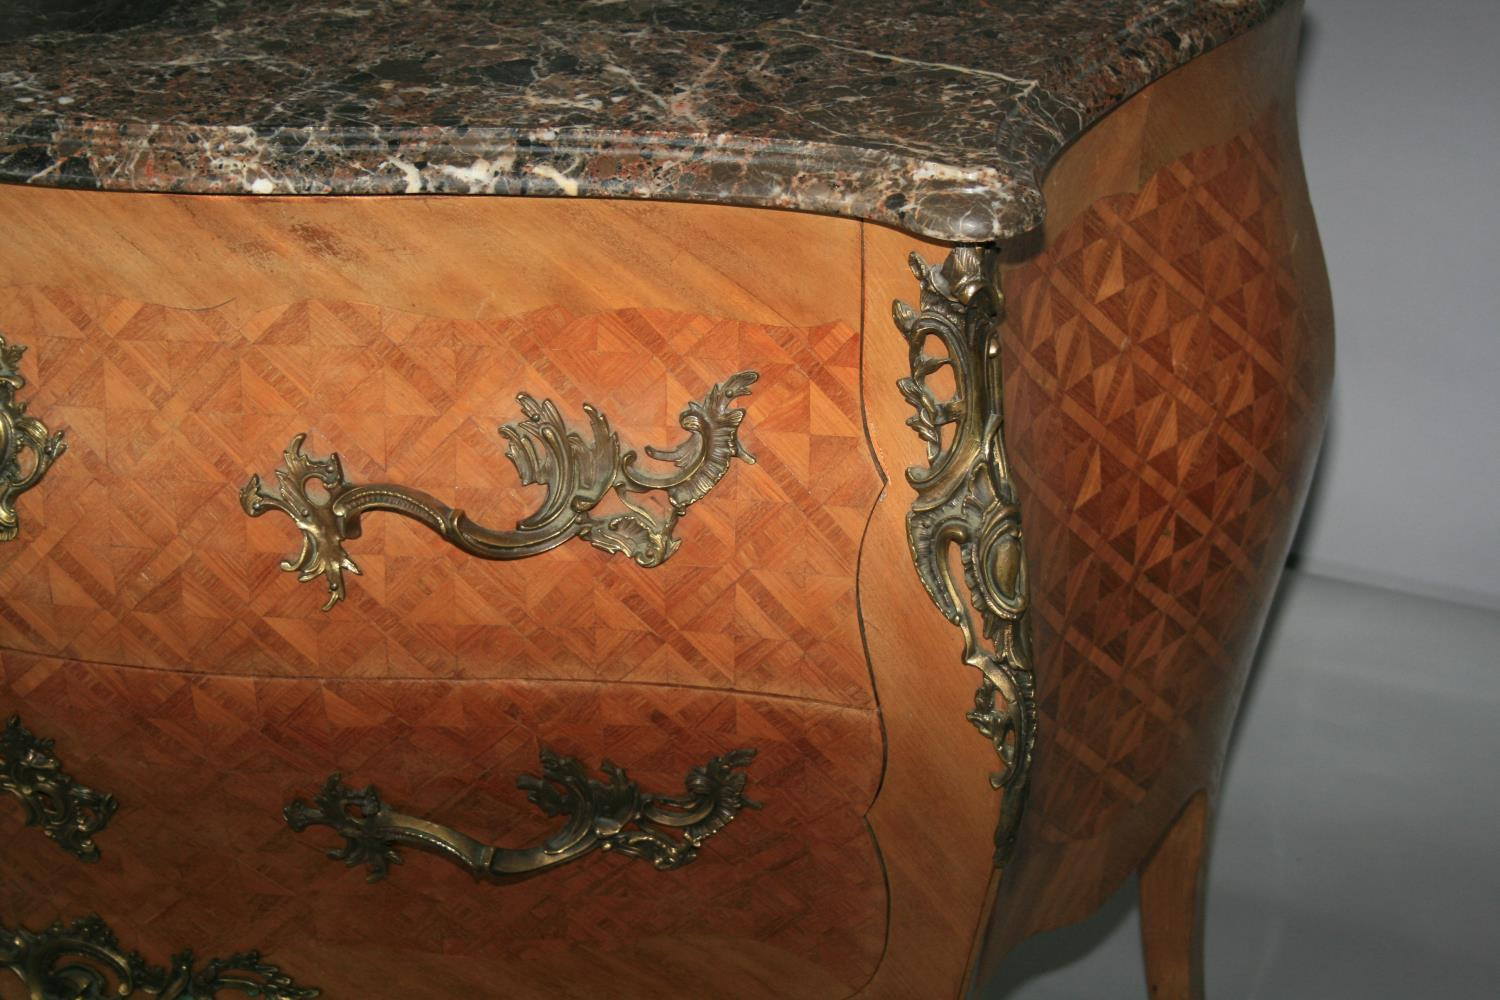 Fine quality antique serpentine commode with marble top above kingwood marquetry base with brass - Image 2 of 3